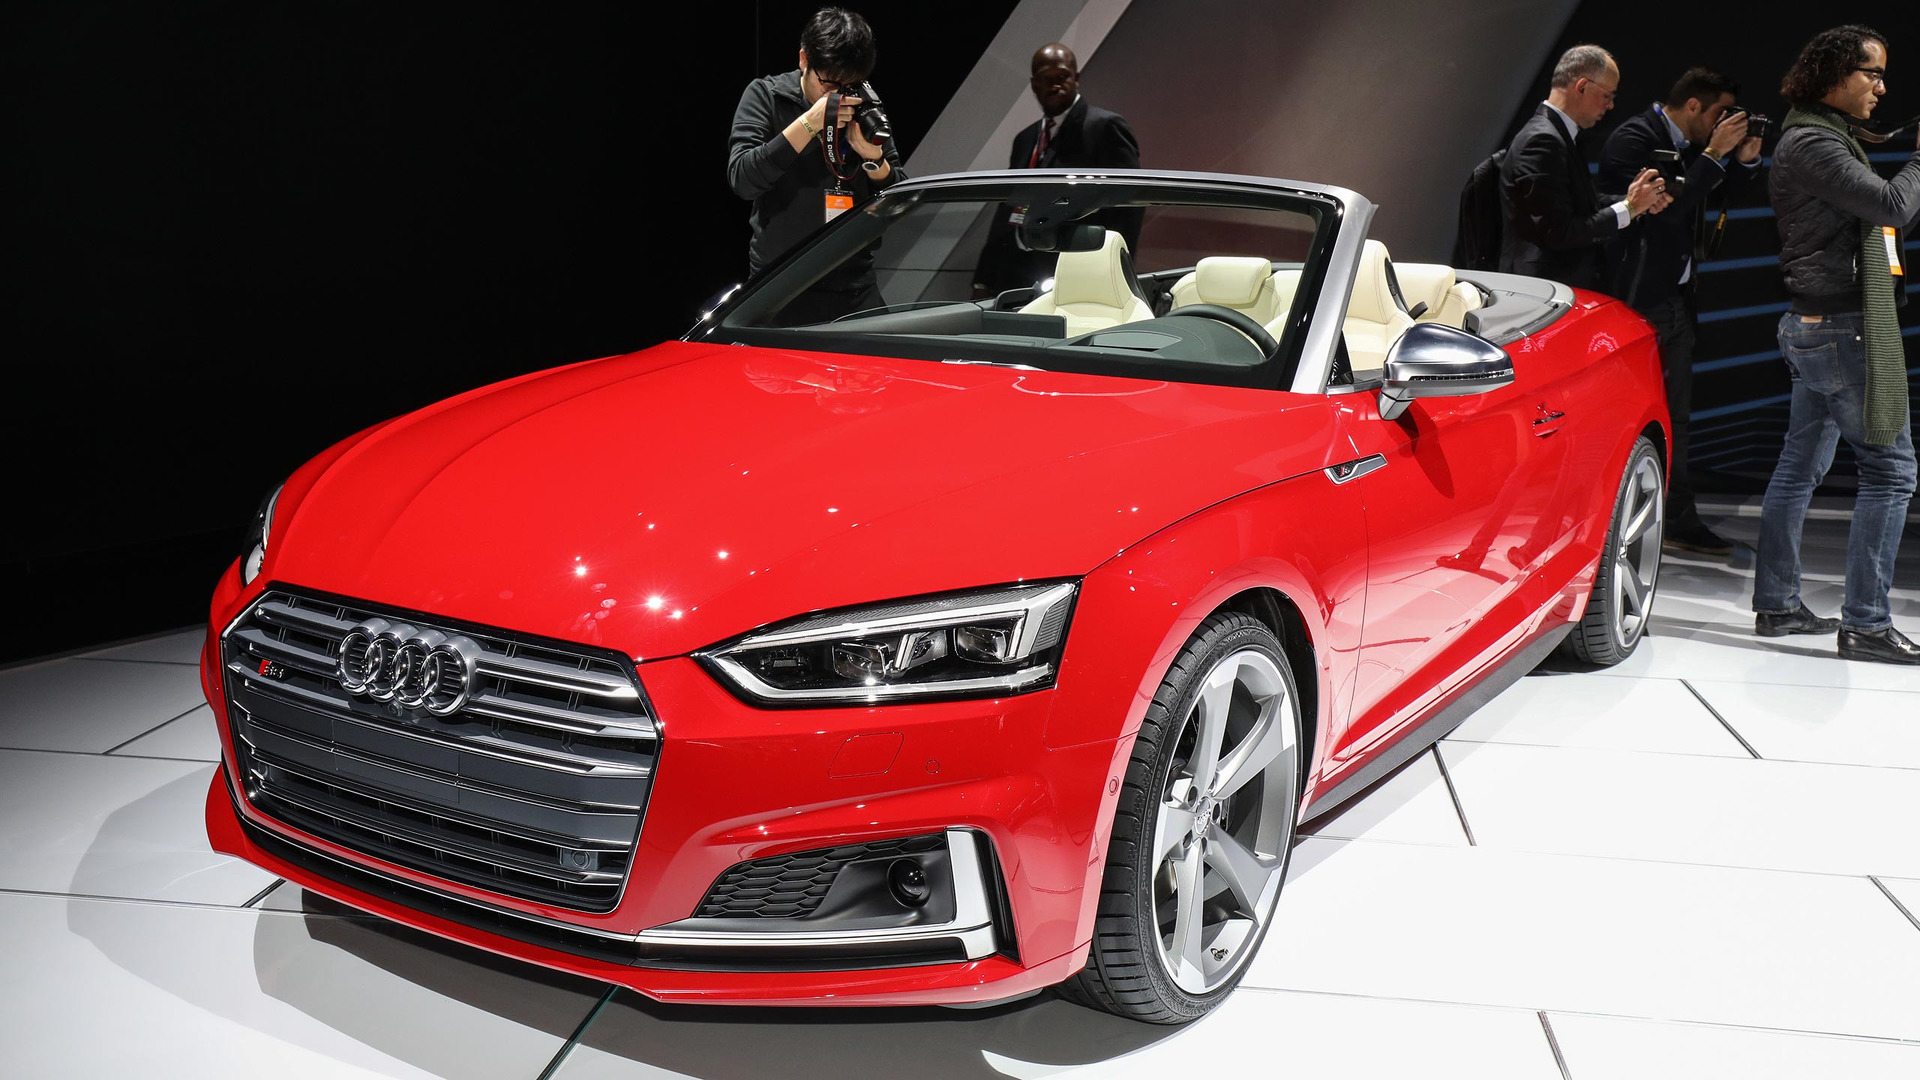 2018 audi s5 cabriolet is the sporty droptop for any season. Black Bedroom Furniture Sets. Home Design Ideas